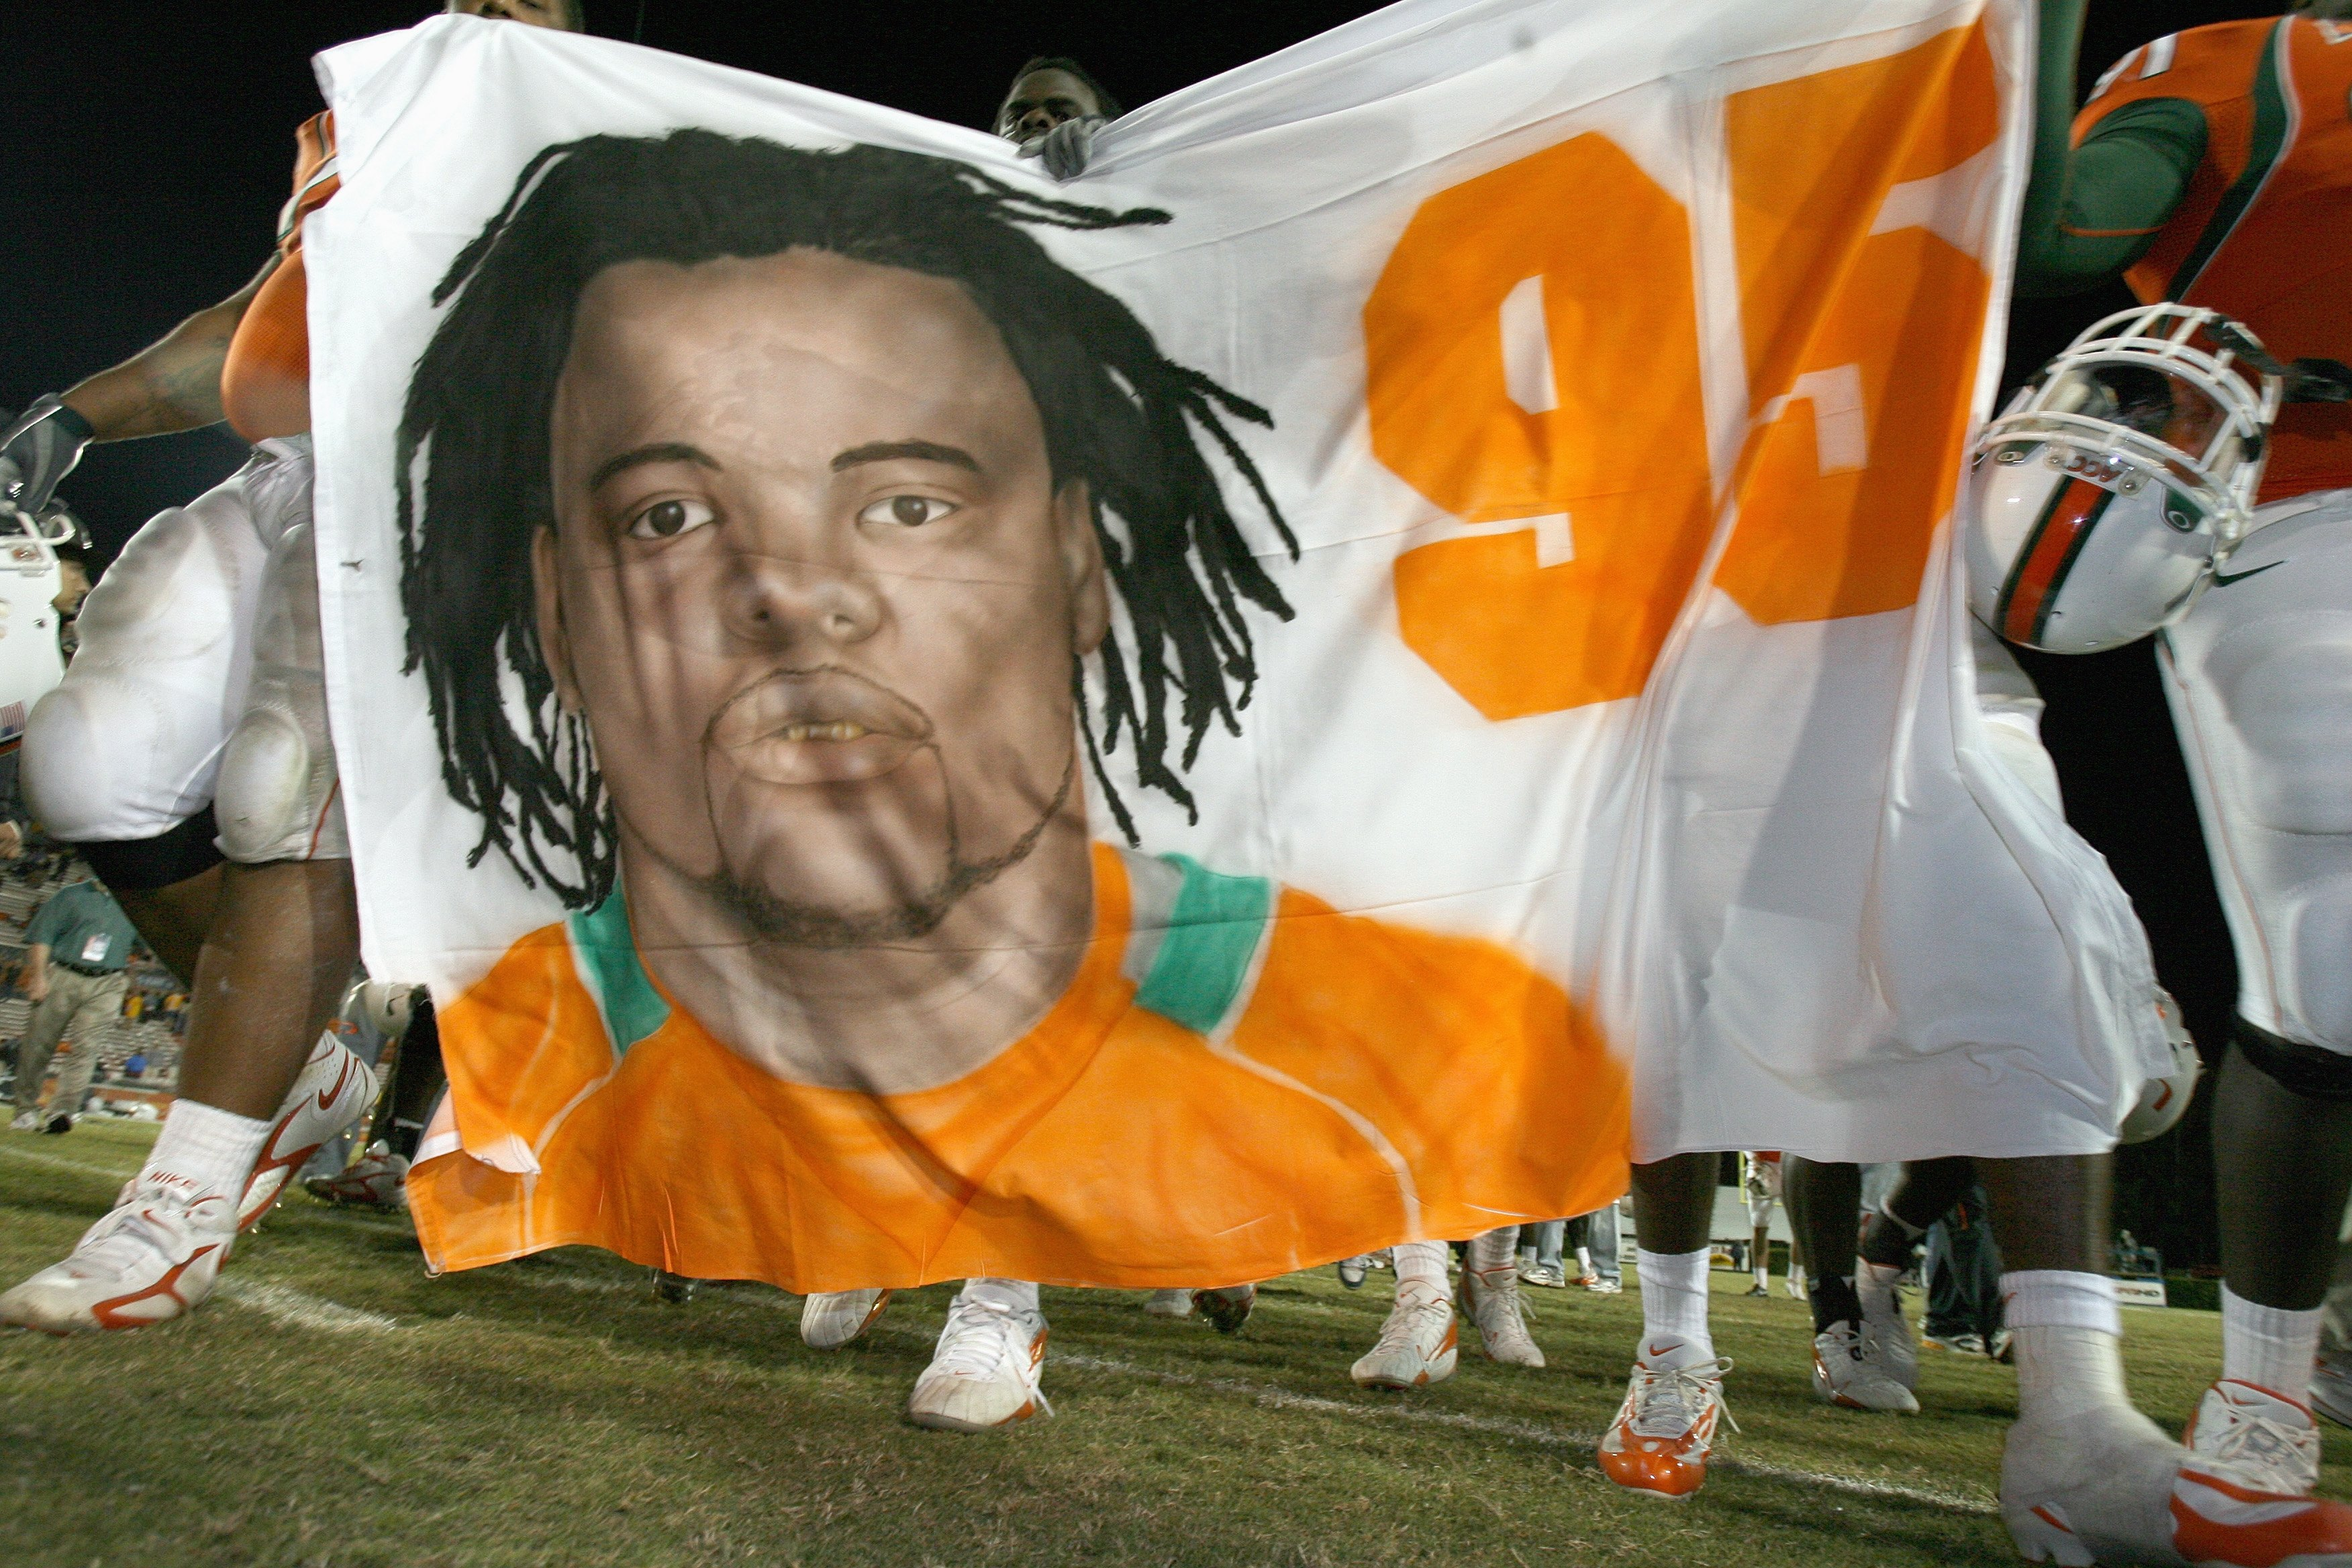 MIAMI - NOVEMBER 23: Teammates of Bryan Pata #95 of the University of Miami Hurricanes walks to mid-field after defeating the Boston College Golden Eagles at the Orange Bowl Stadium on November 23, 2006 in Miami, Florida. Pata was shot and killed after pr